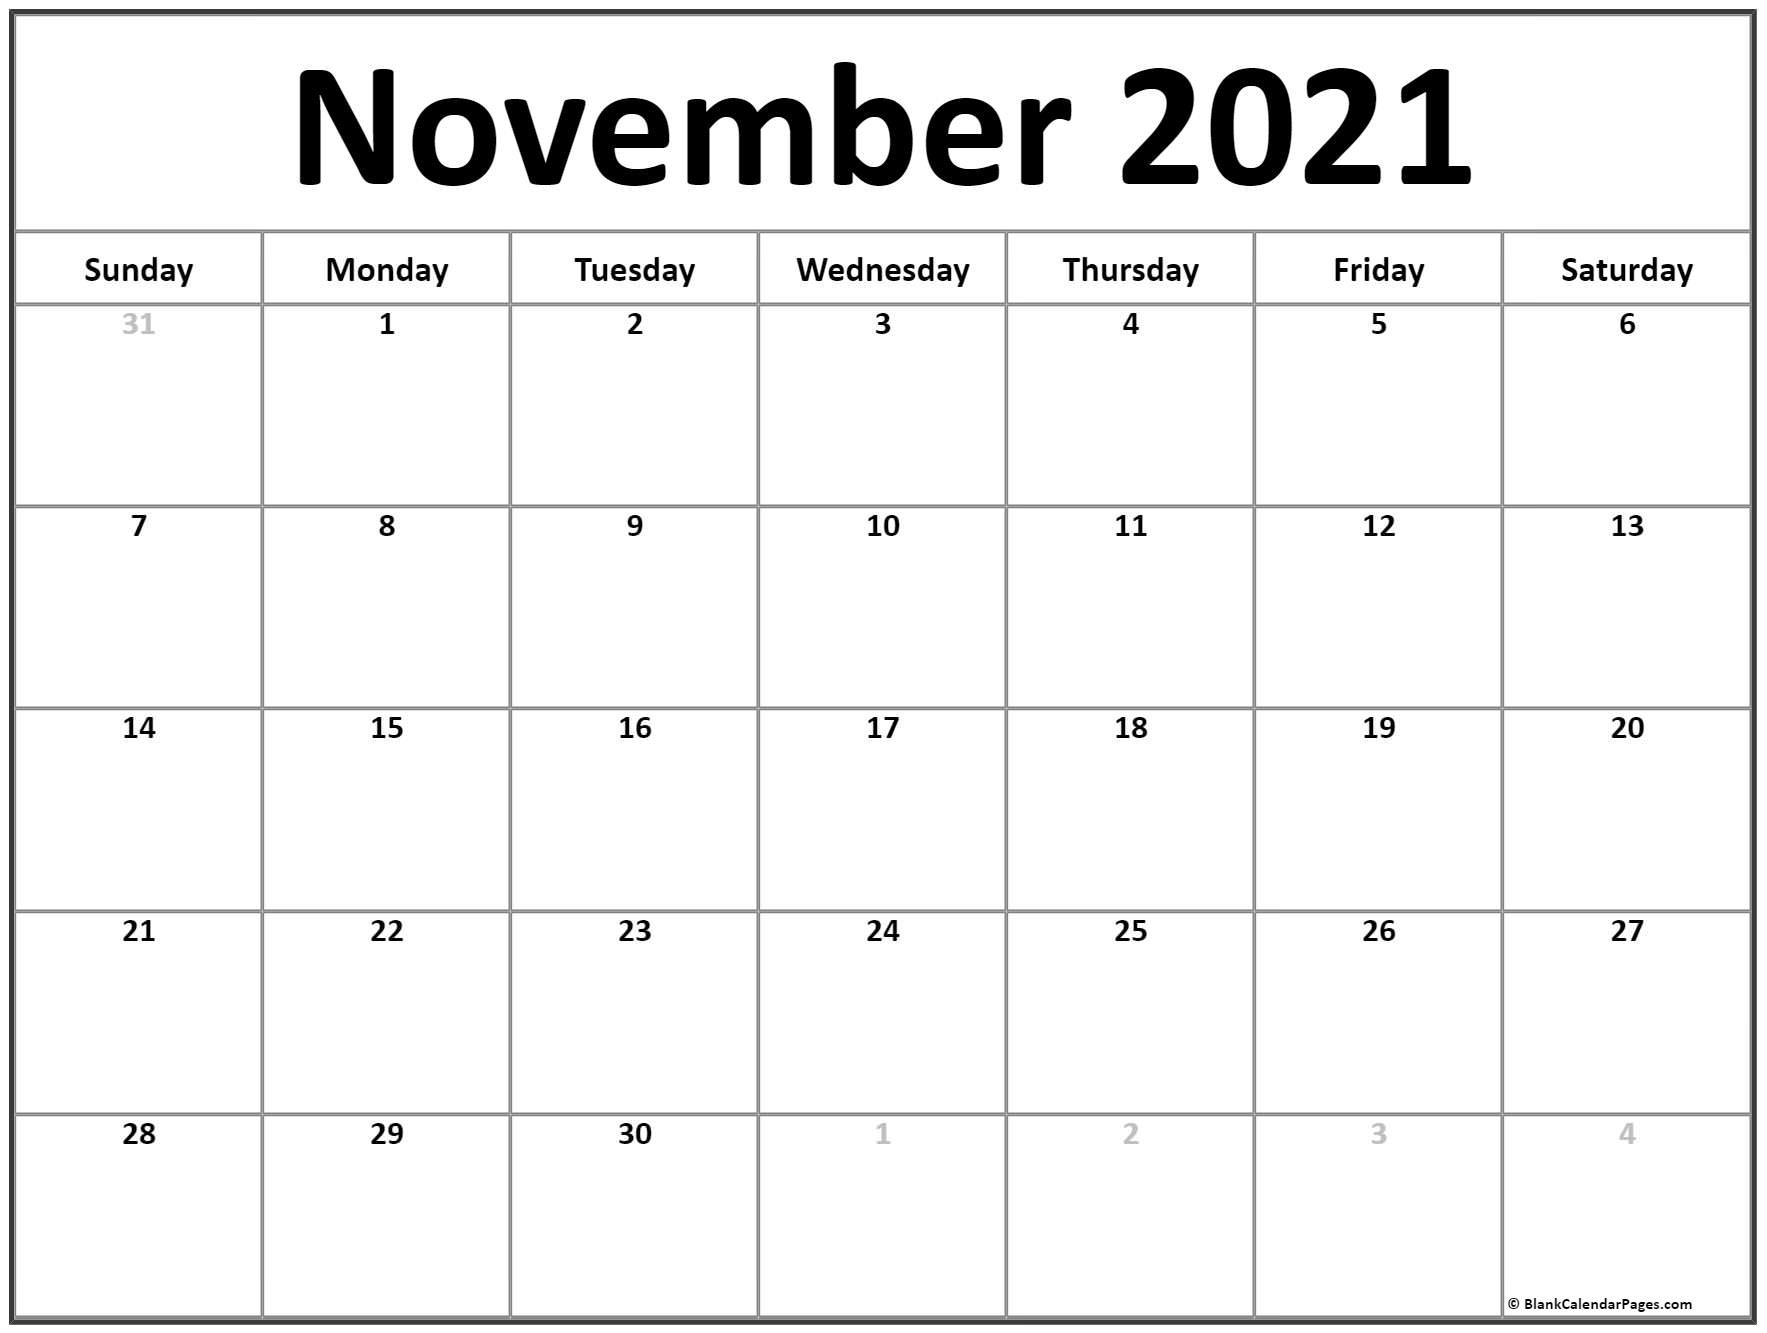 November 2021 Calendar | Free Printable Monthly Calendars Intended For Calendar With November 2021 Mexican Names